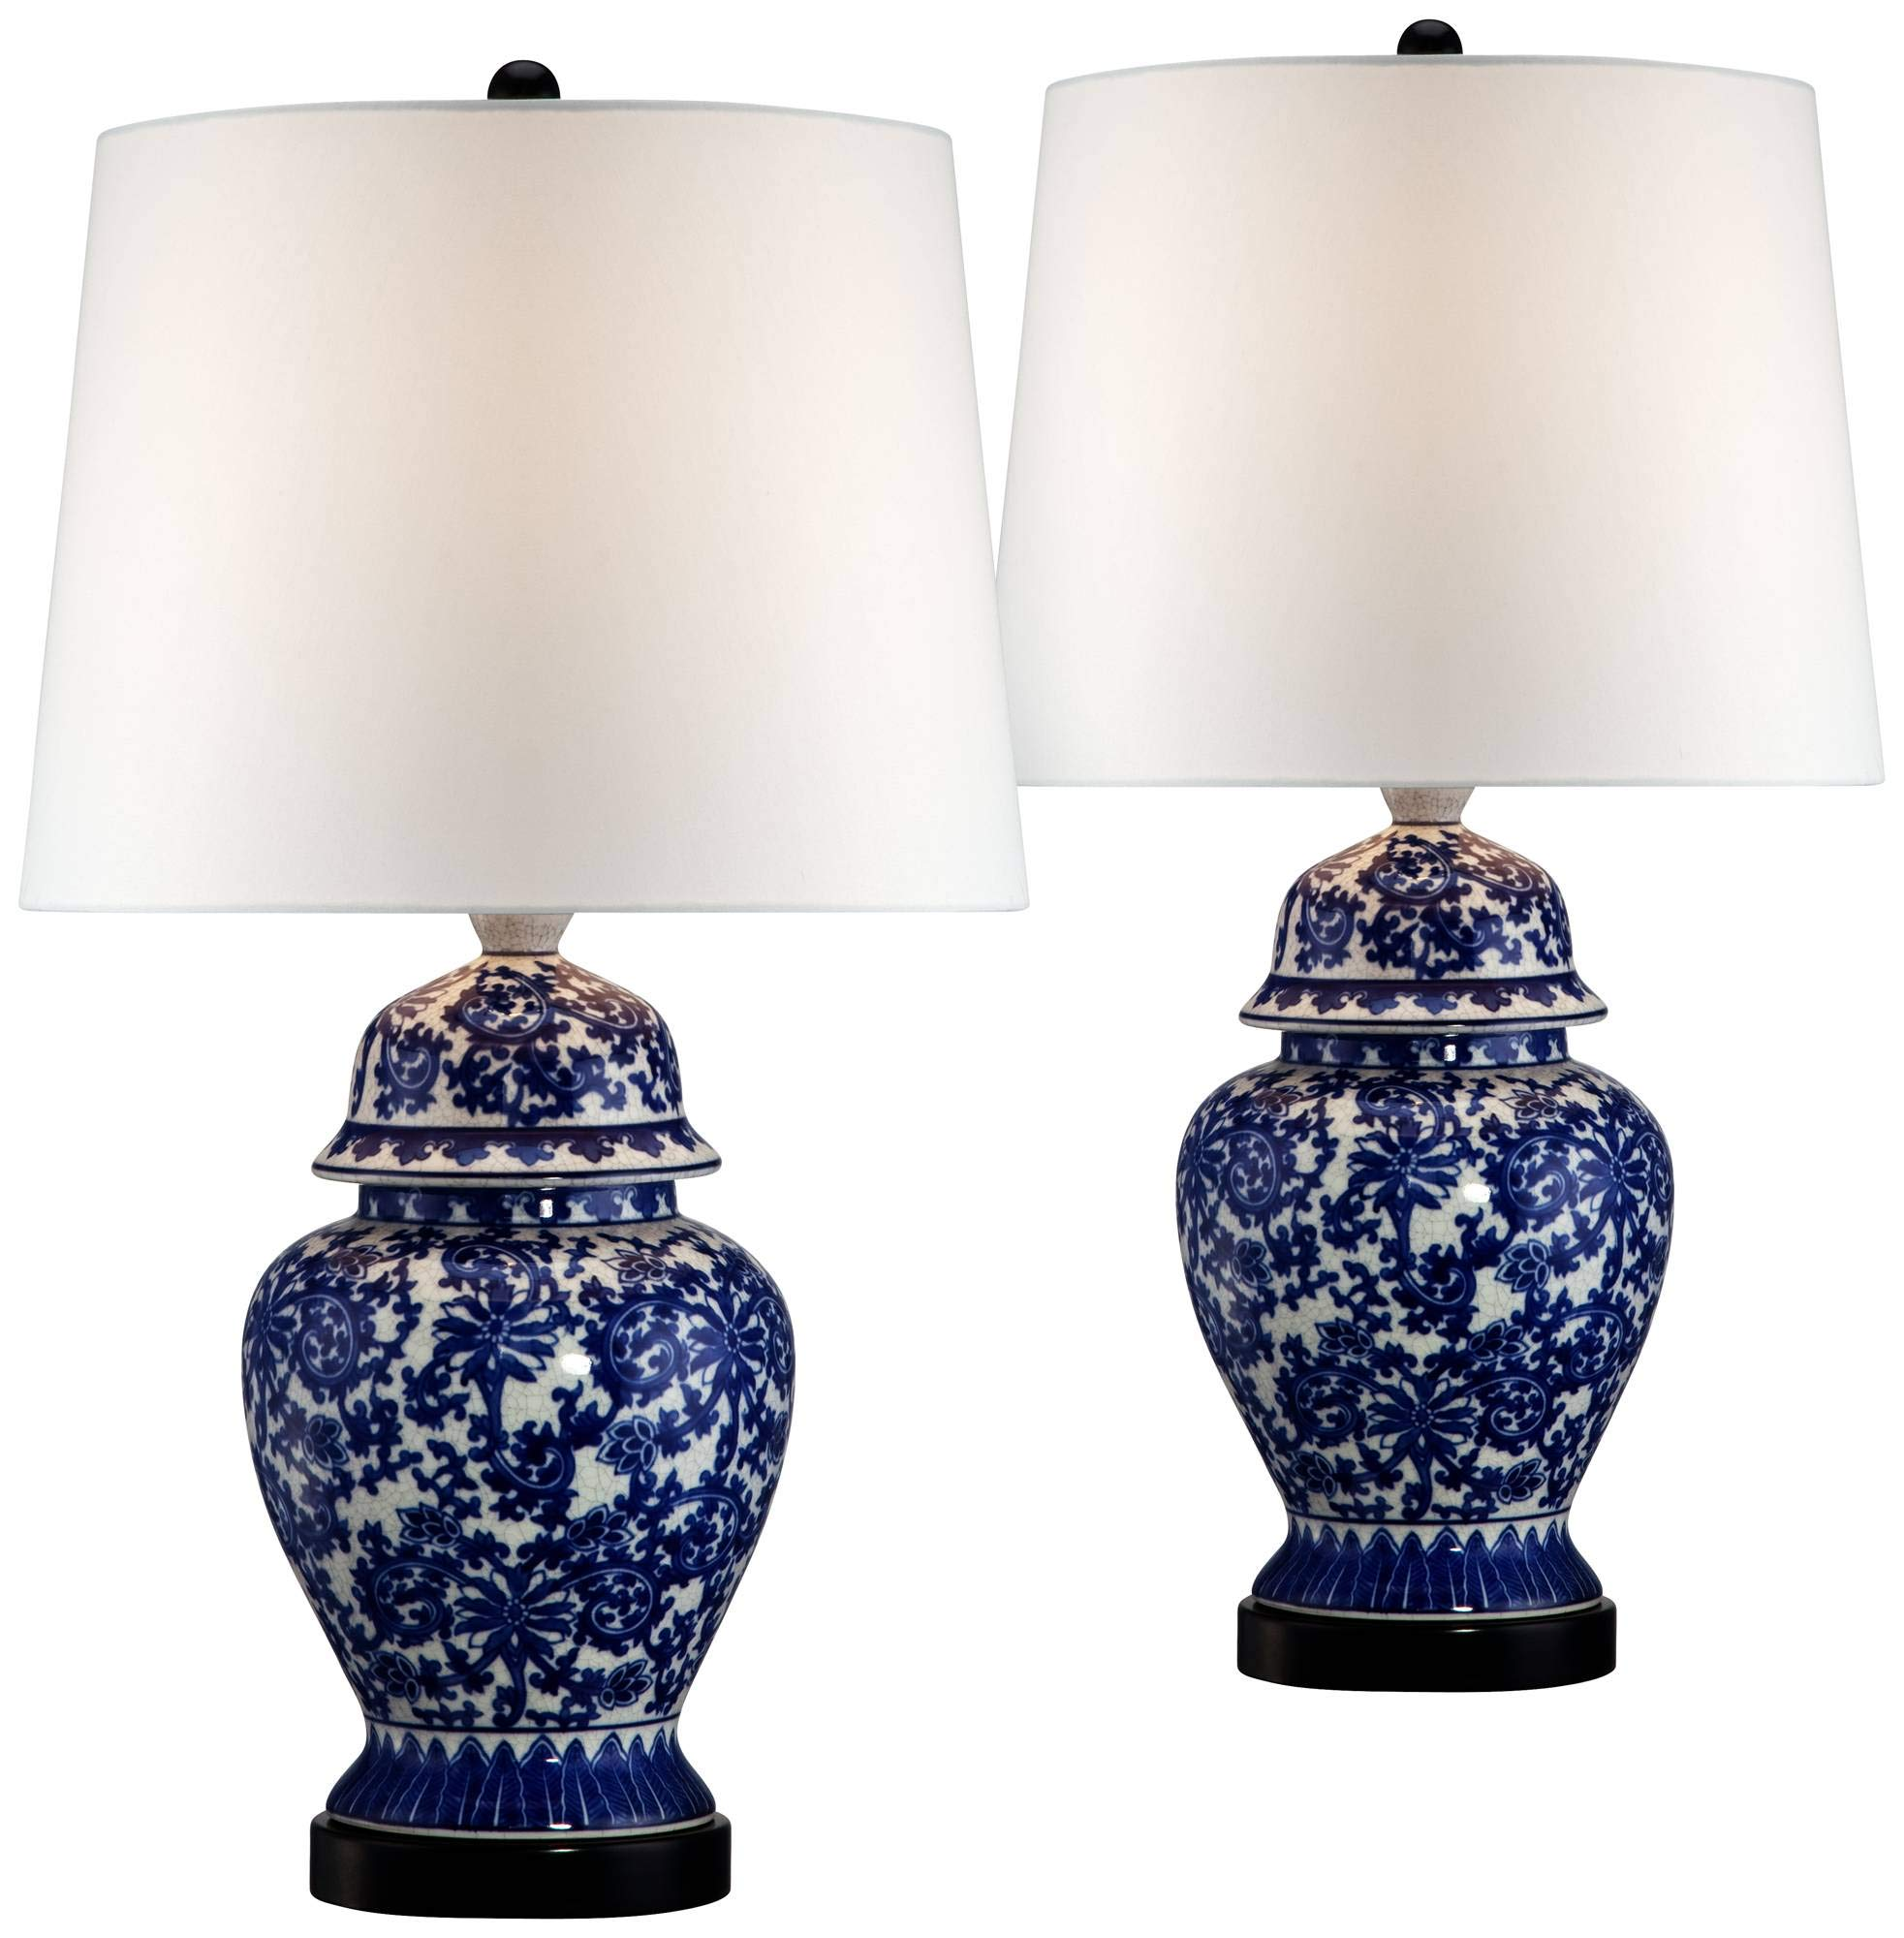 Asian Table Lamps Set of 2 Porcelain Blue Temple Jar Floral White Drum Shade for Living Room Family Bedroom Bedside - Regency Hill